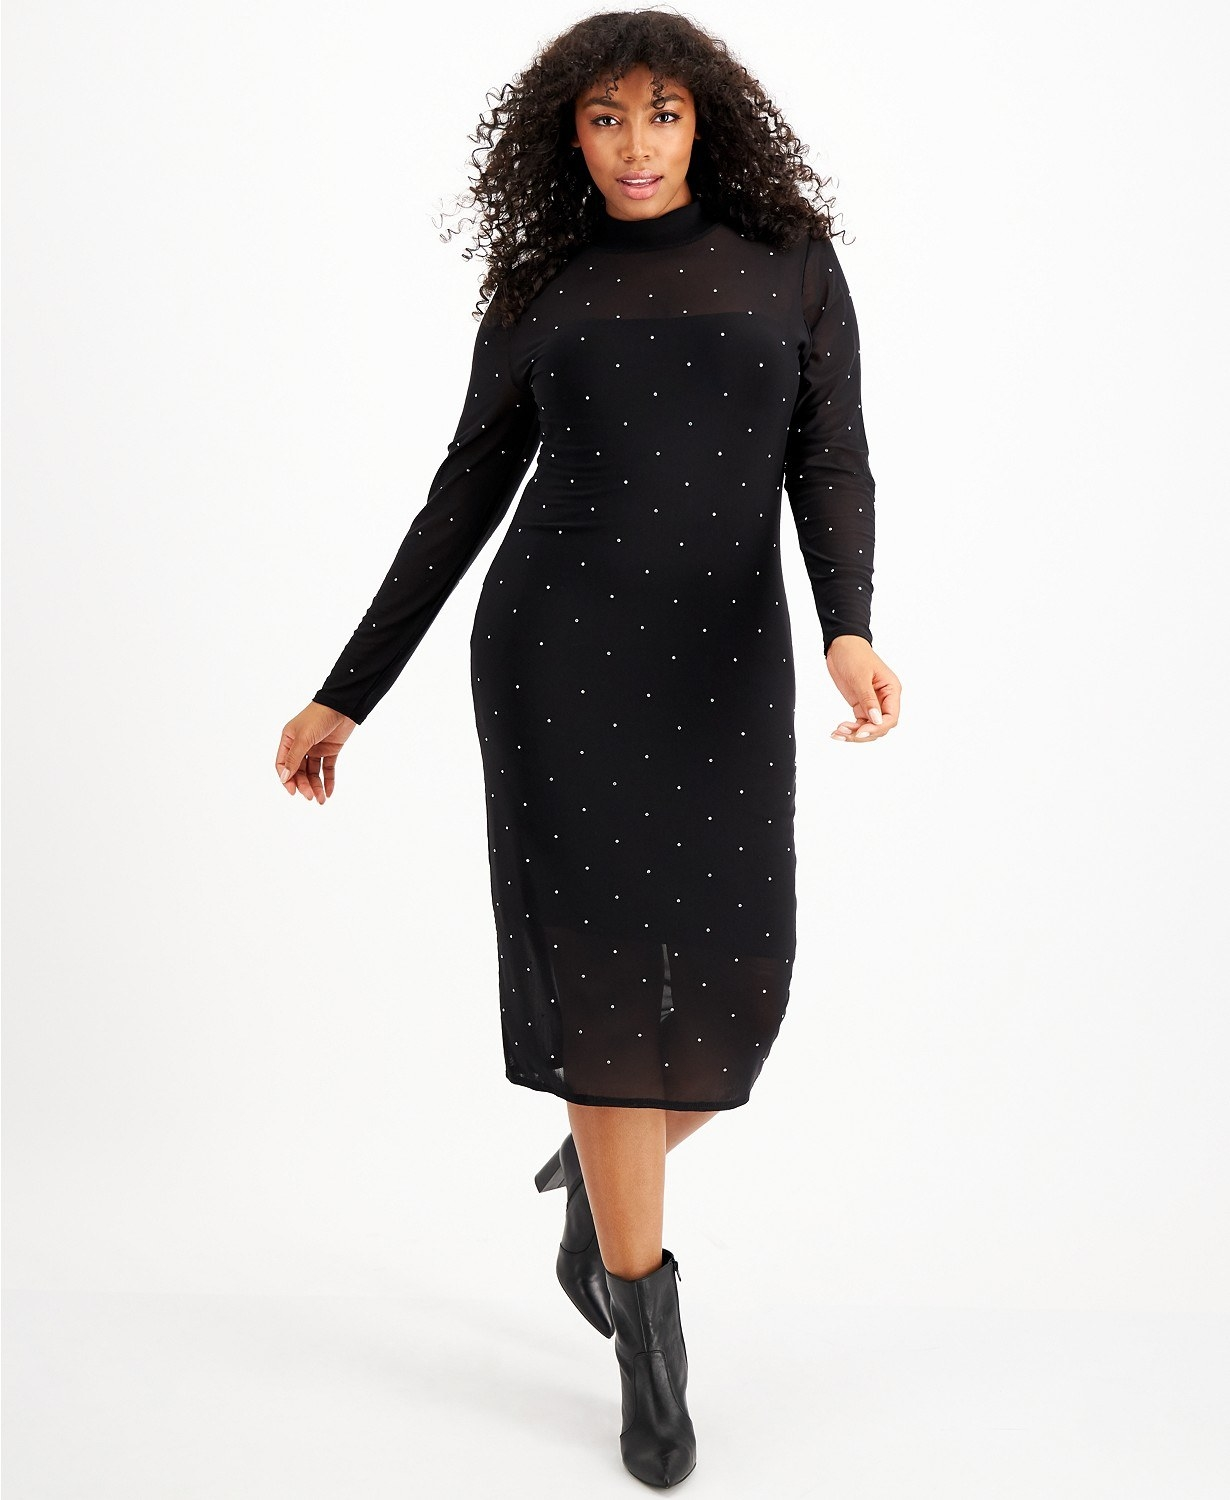 Model wearing the mid-calf length long-sleeved mesh dress with small crystals all over it